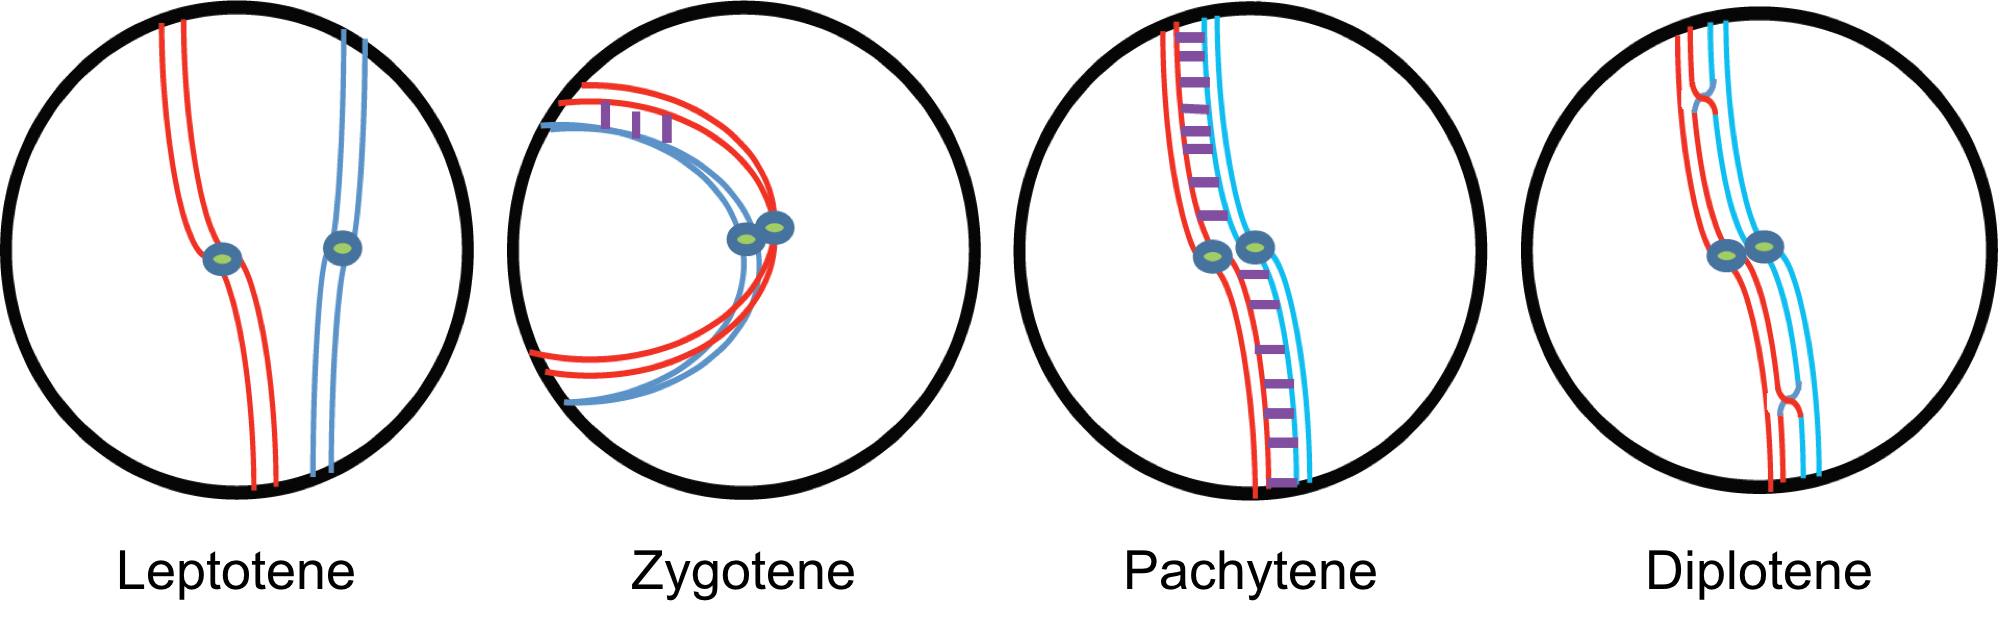 Our research burgess lab in leptotene the nucleus consists of individual strands of replicated chromosomes the two lines in zygotene synapsis of homologous chromosomes red and ccuart Gallery